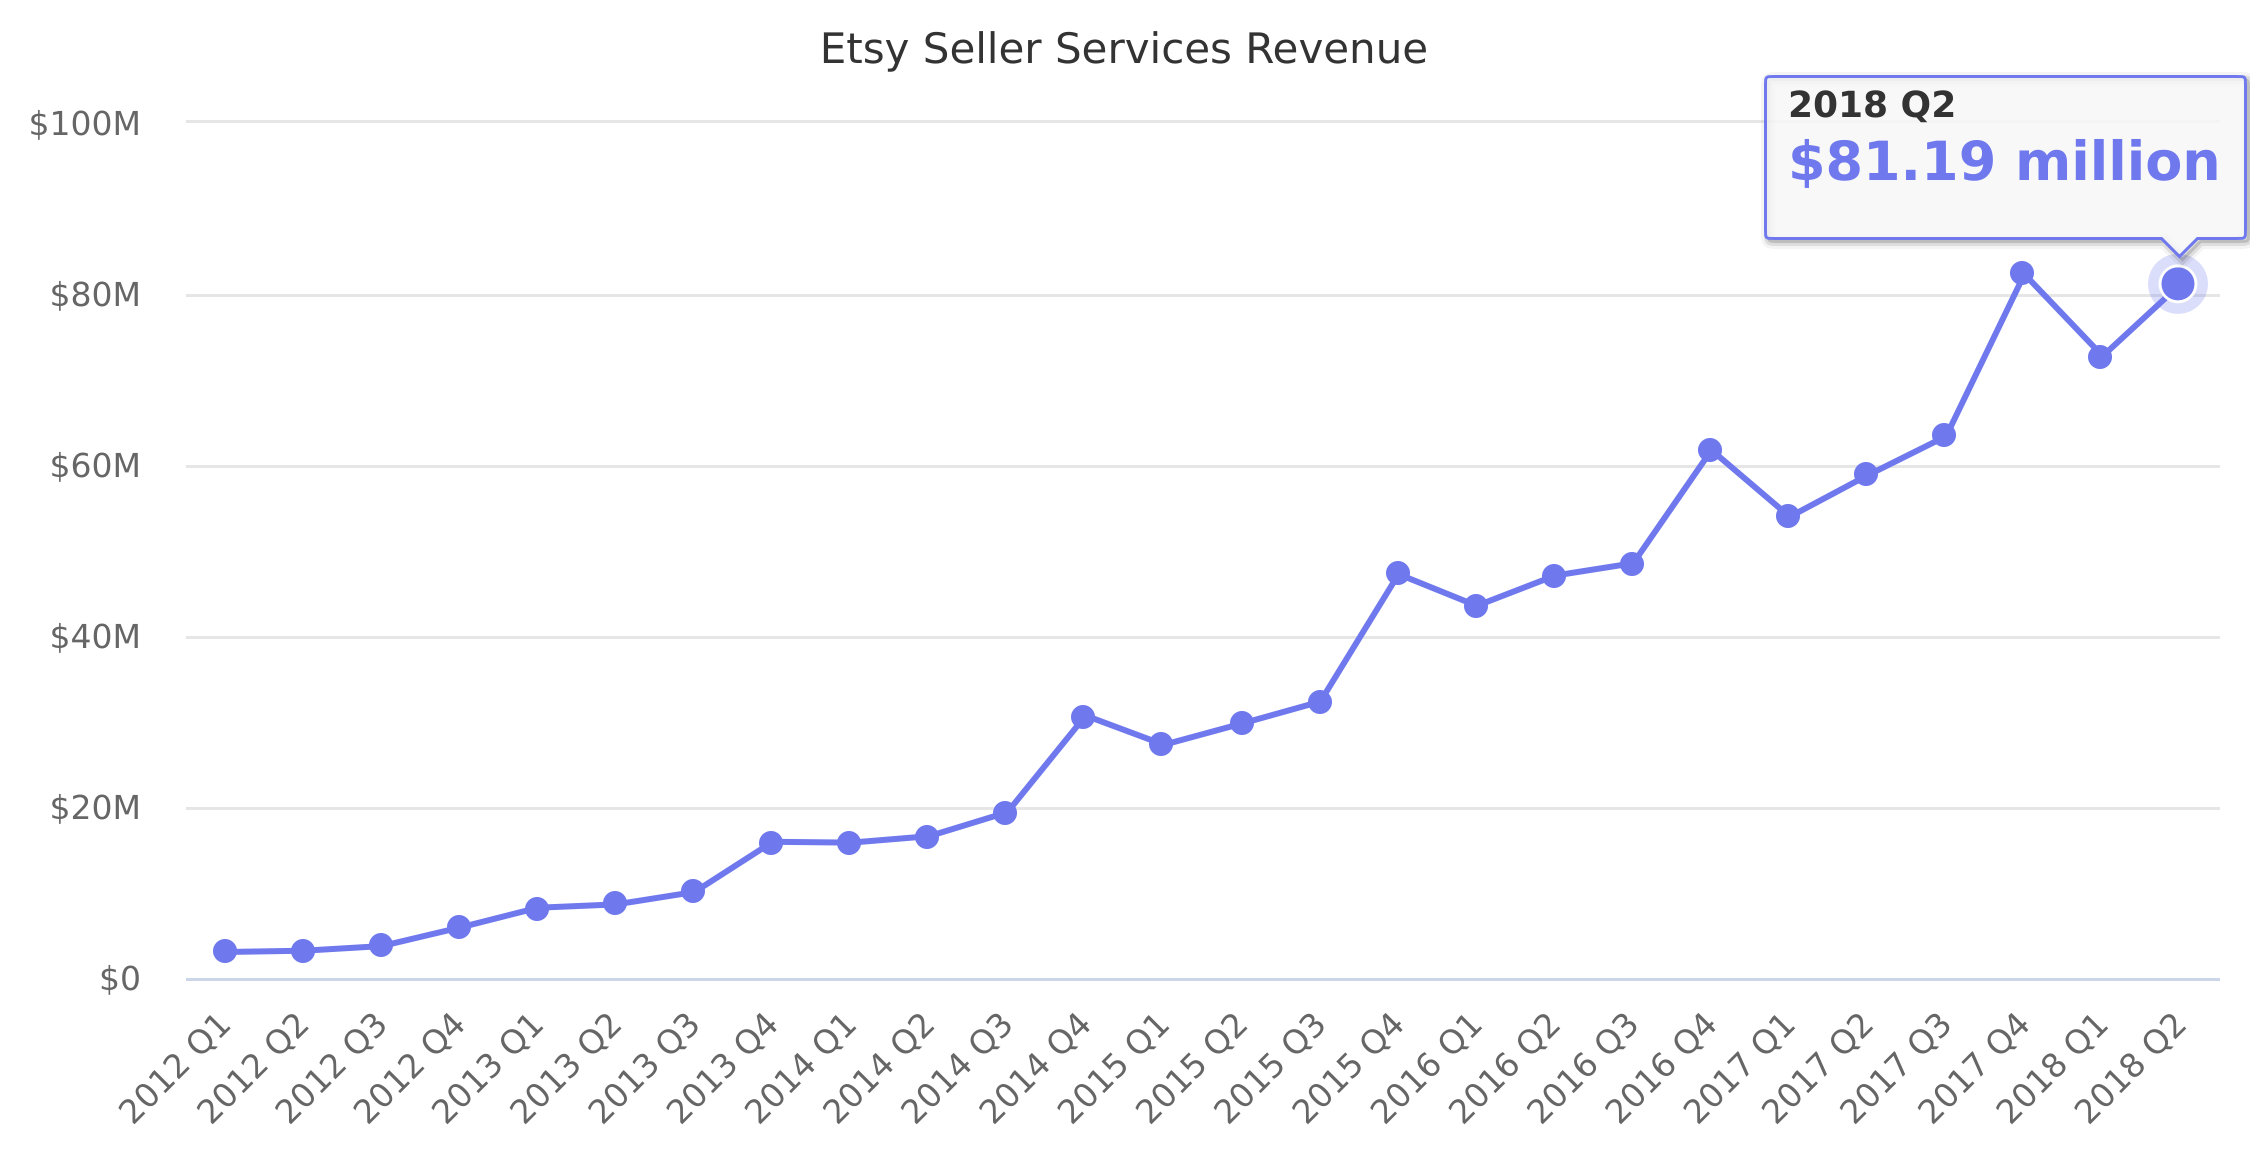 Etsy Seller Services Revenue 2012-2018